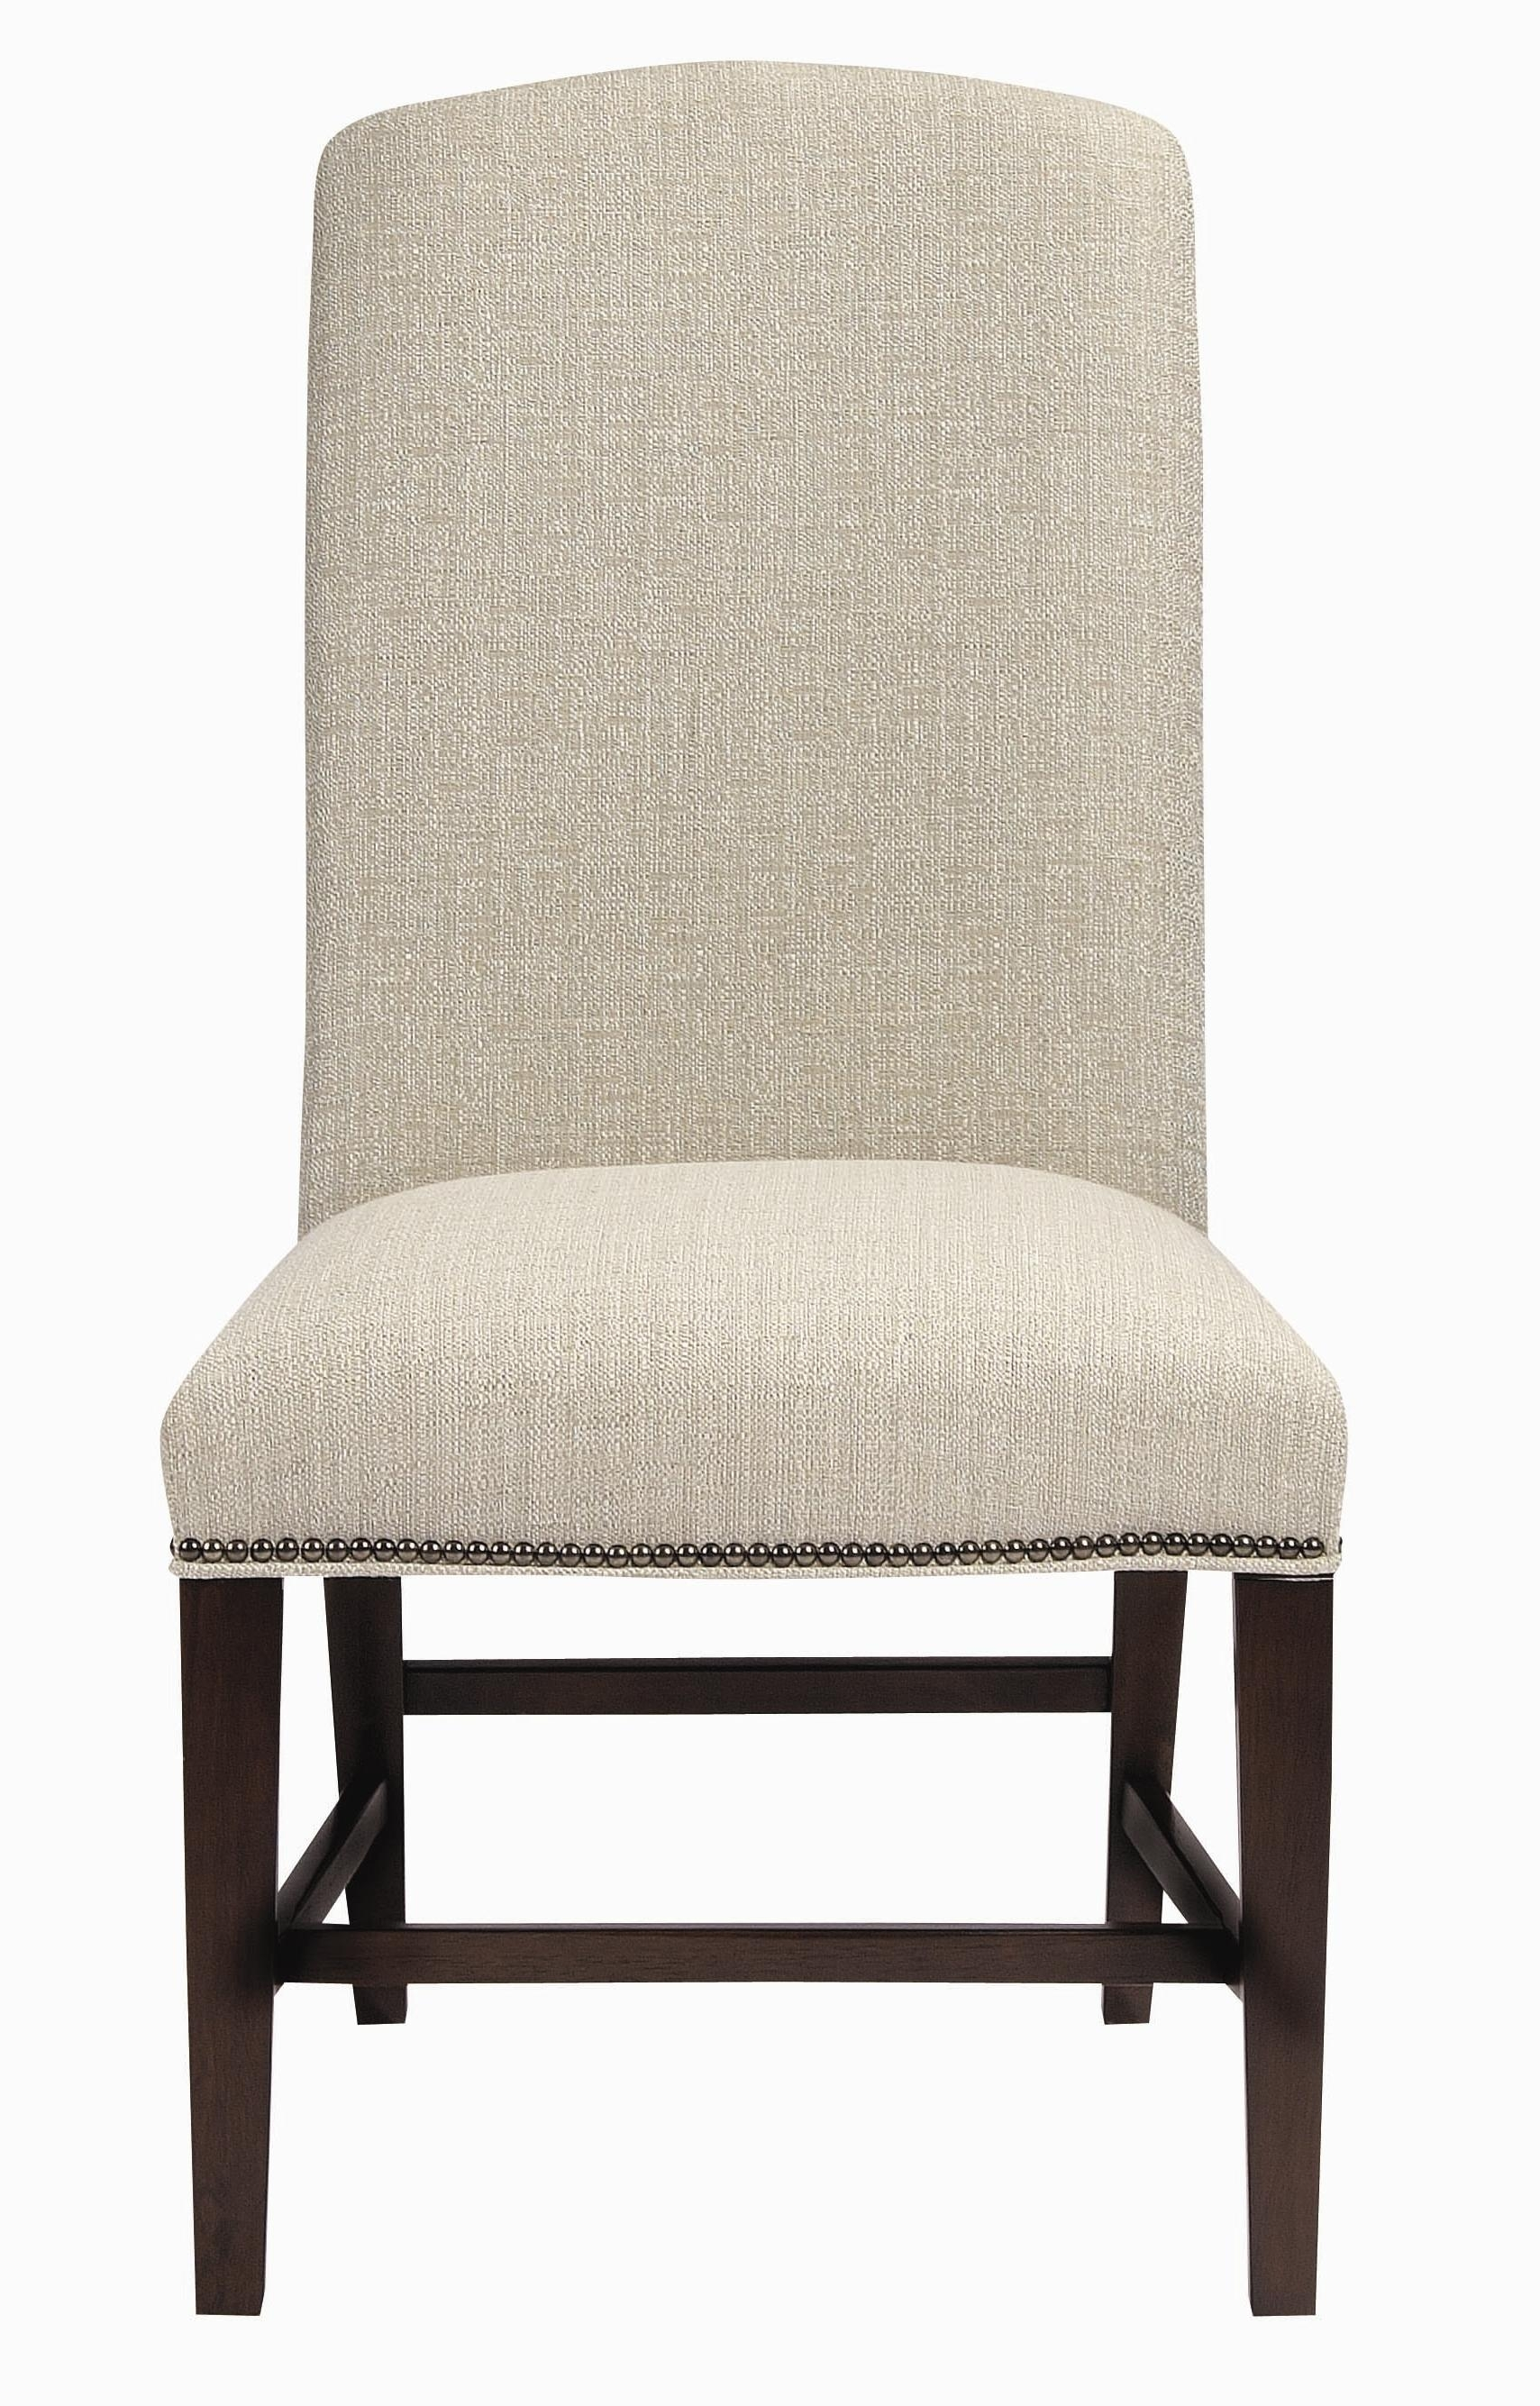 Most Current Jaxon Wood Side Chairs In Bernhardt Interiors – Chairs Hadden Exposed Wood Side Chair (View 16 of 20)